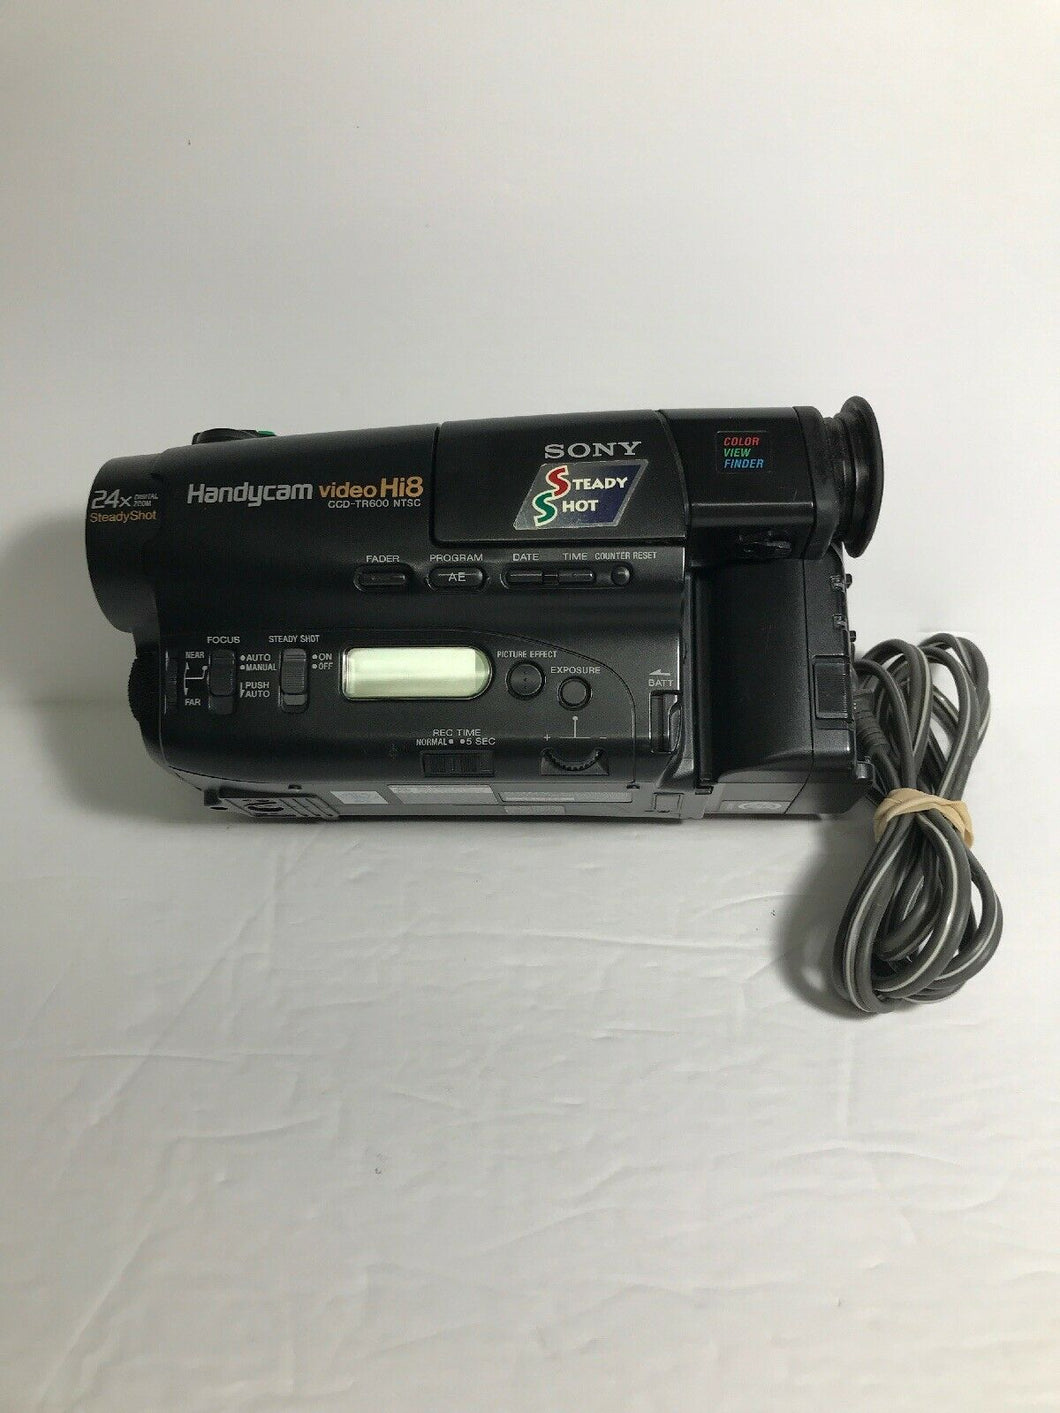 Sony CCD-TR600 Hi8 heavy duty NTSC camcorder plays 8mm Hi8 analog tapes